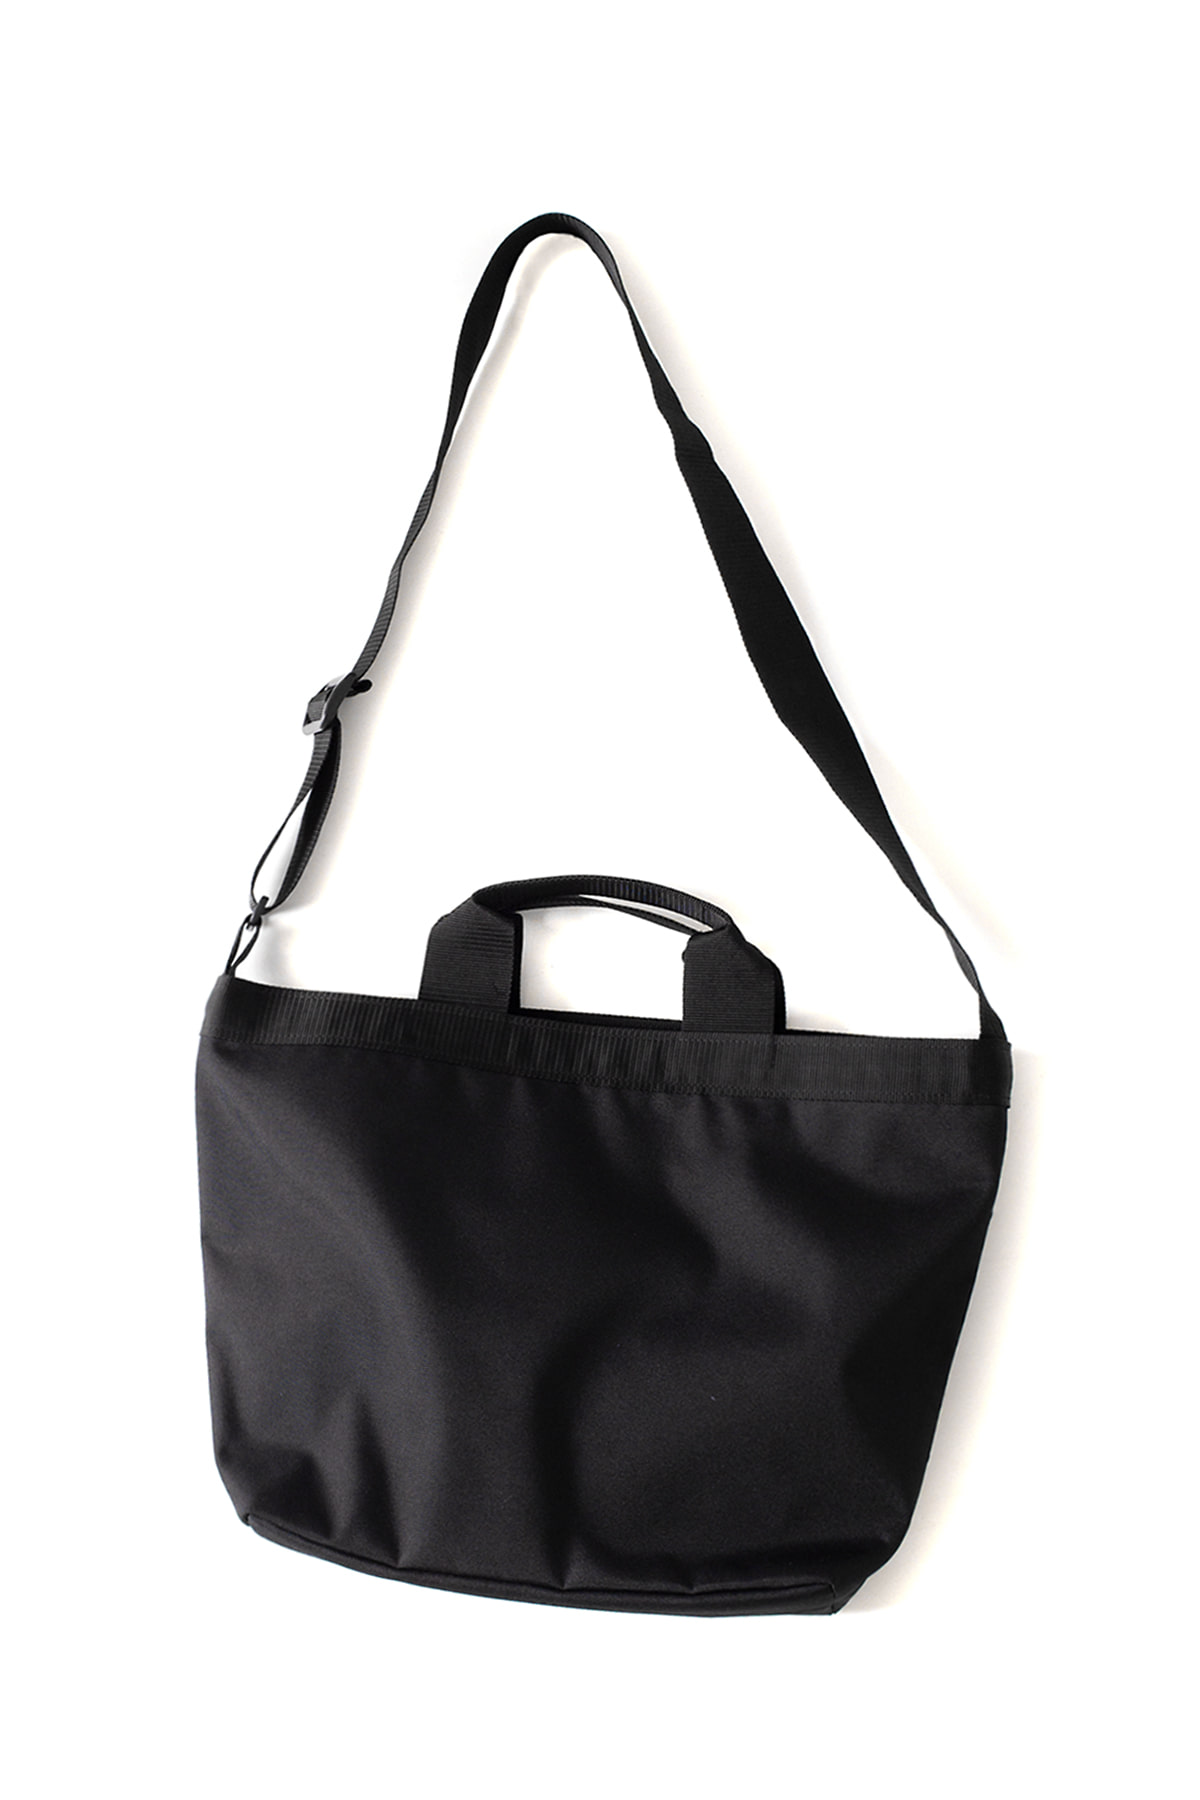 RINEN : Eco Made Canvas Tote Shouder (Black)